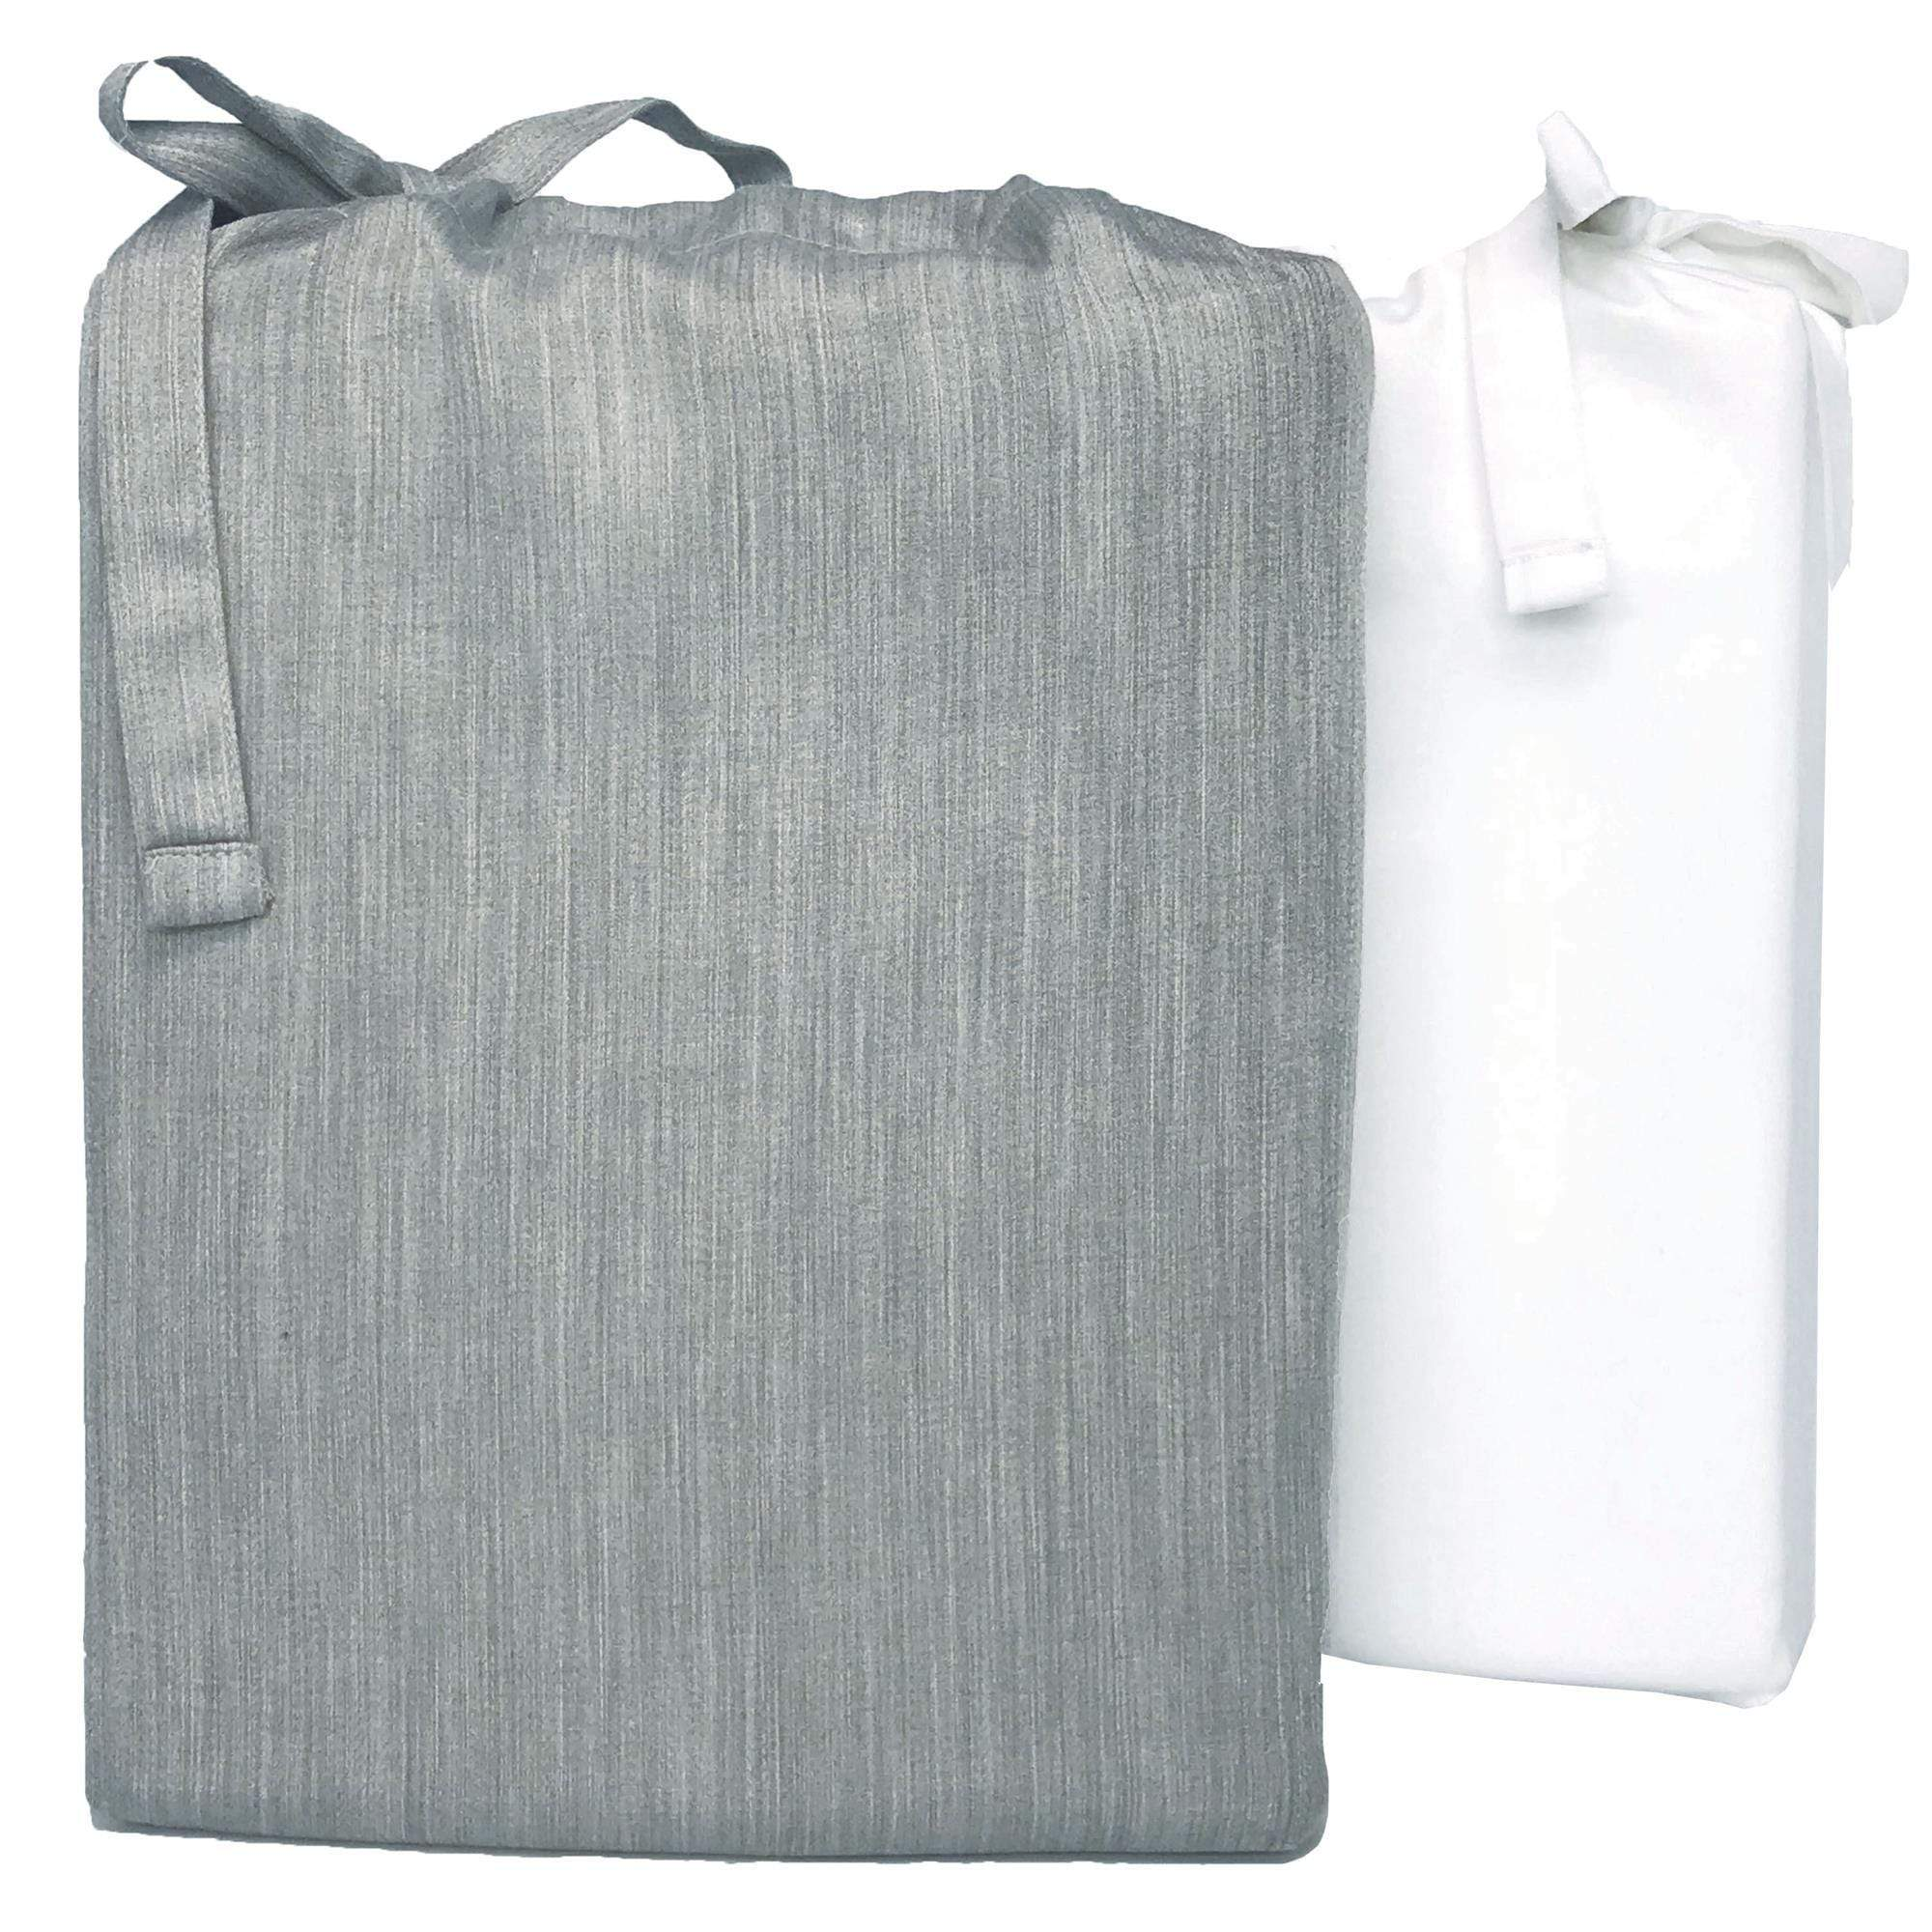 eco-mélange™ Bamboo Cotton Duvet Covers Silver